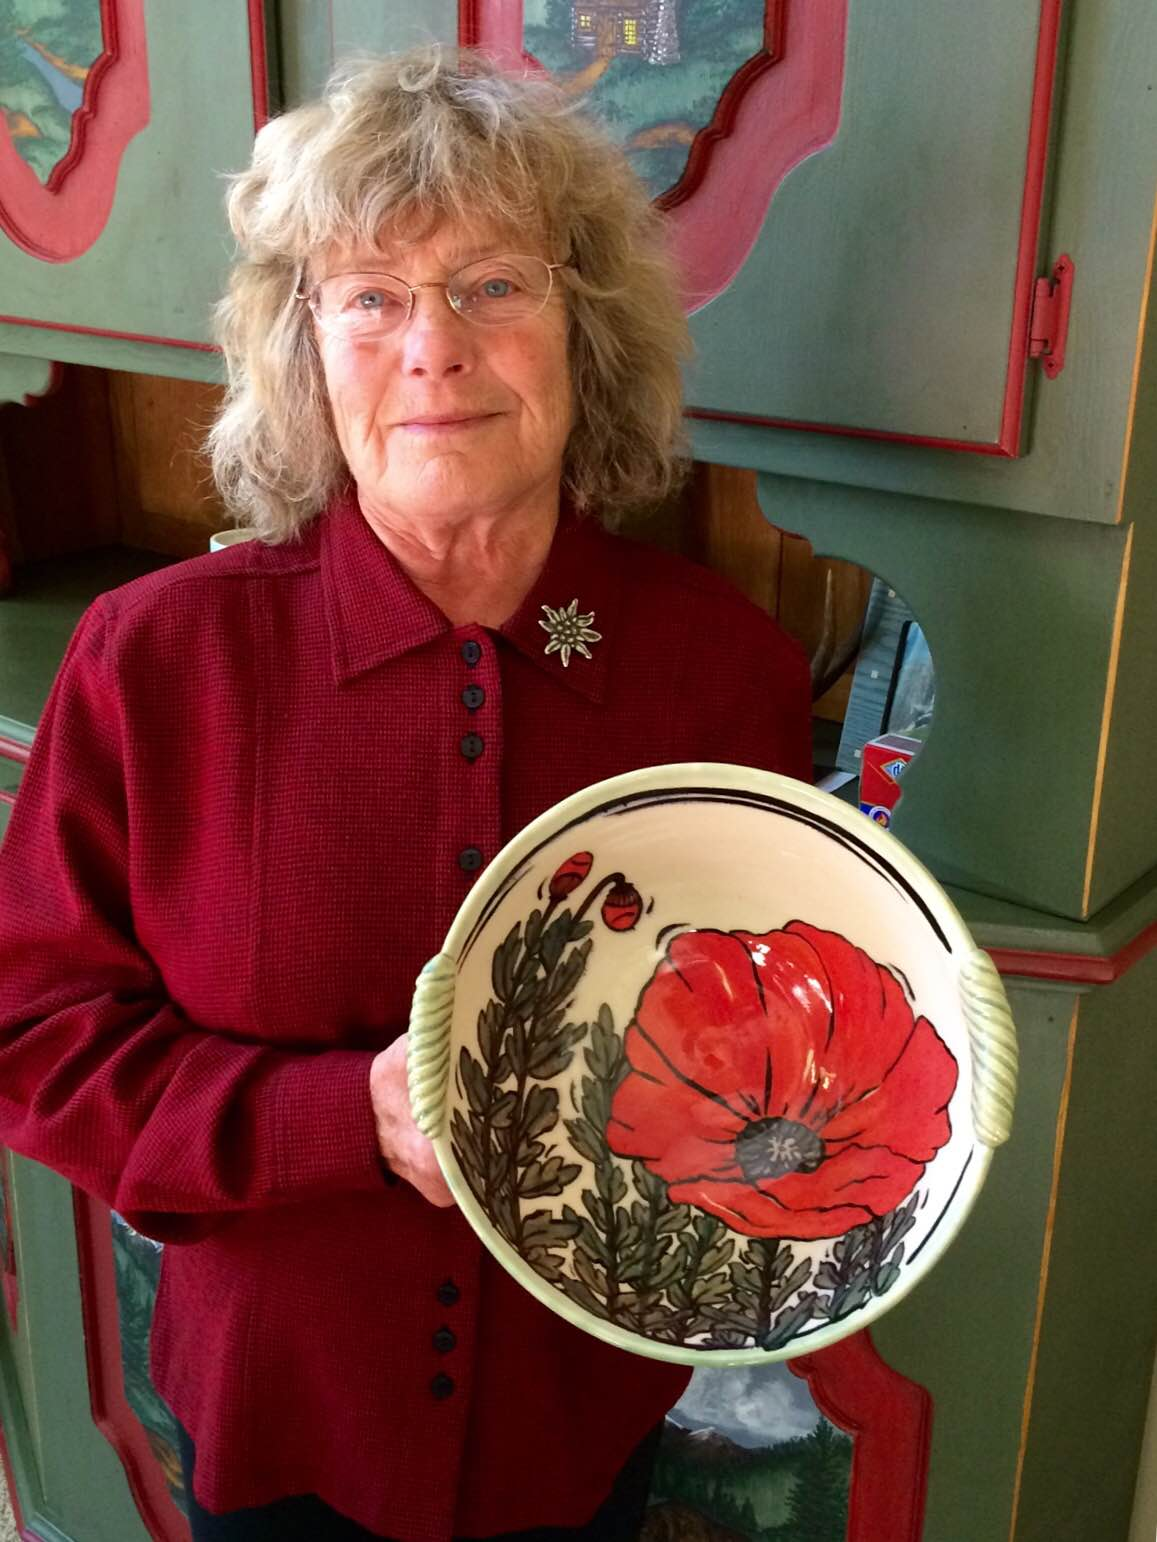 Shari Hoghead holds a favorite bowl